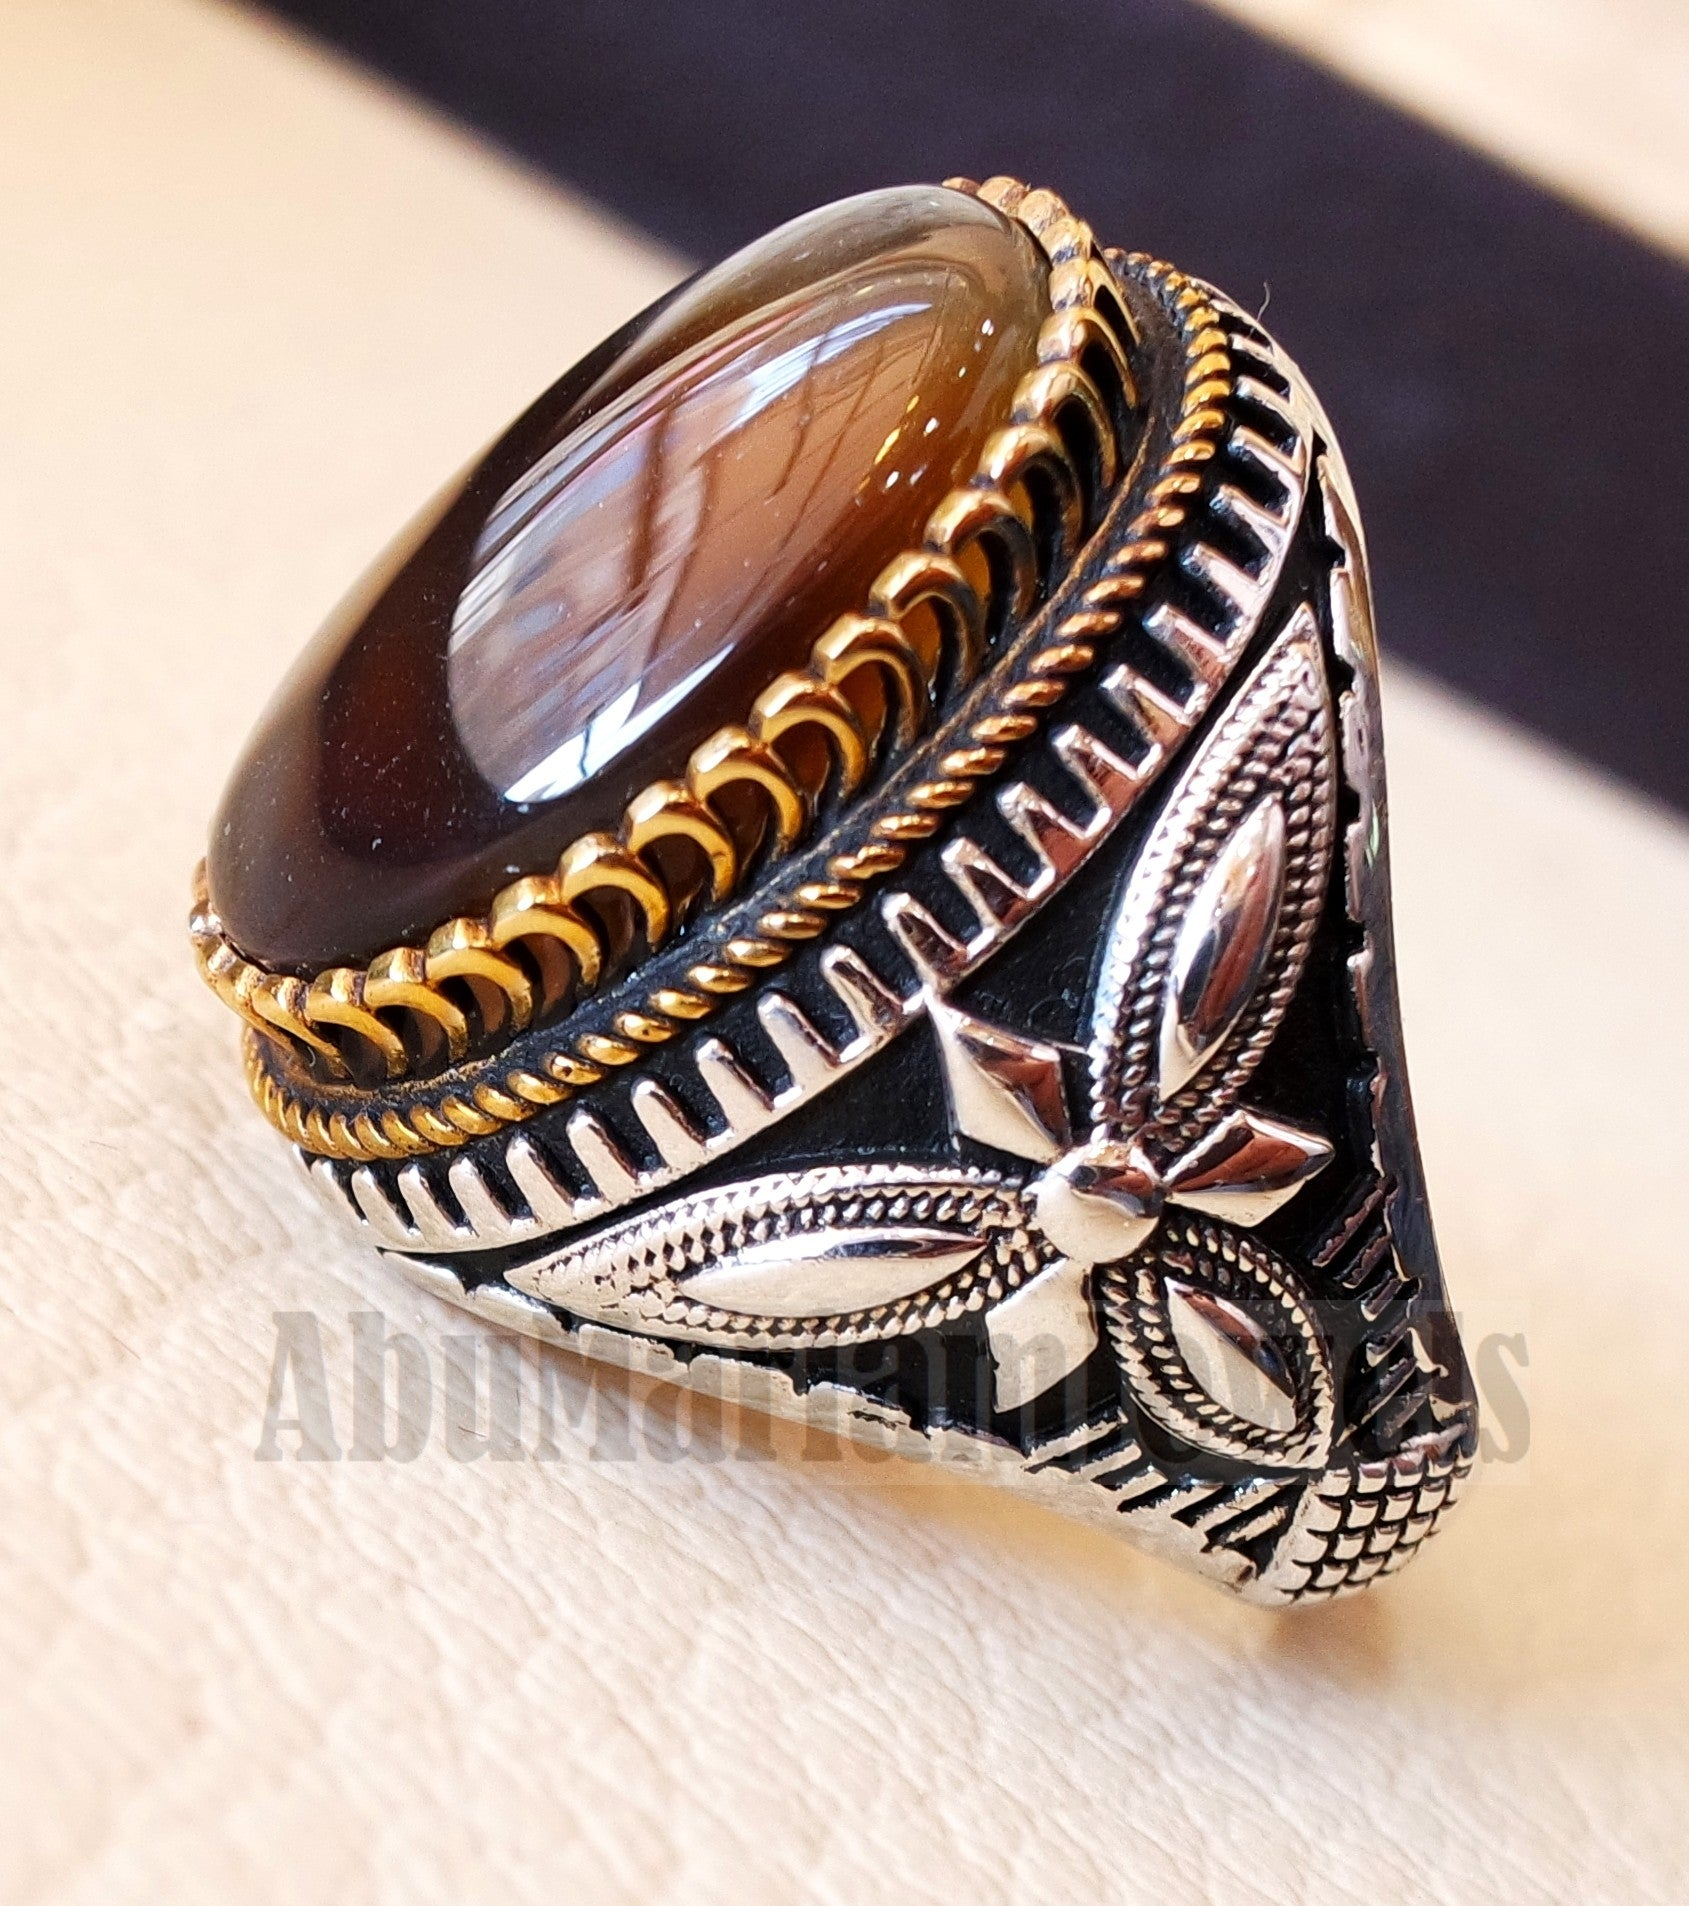 Oval yamani aqeeq natural semi precious multi color agate gem men ring sterling silver 925 and bronze jewelry all sizes  1011 عقيق يماني